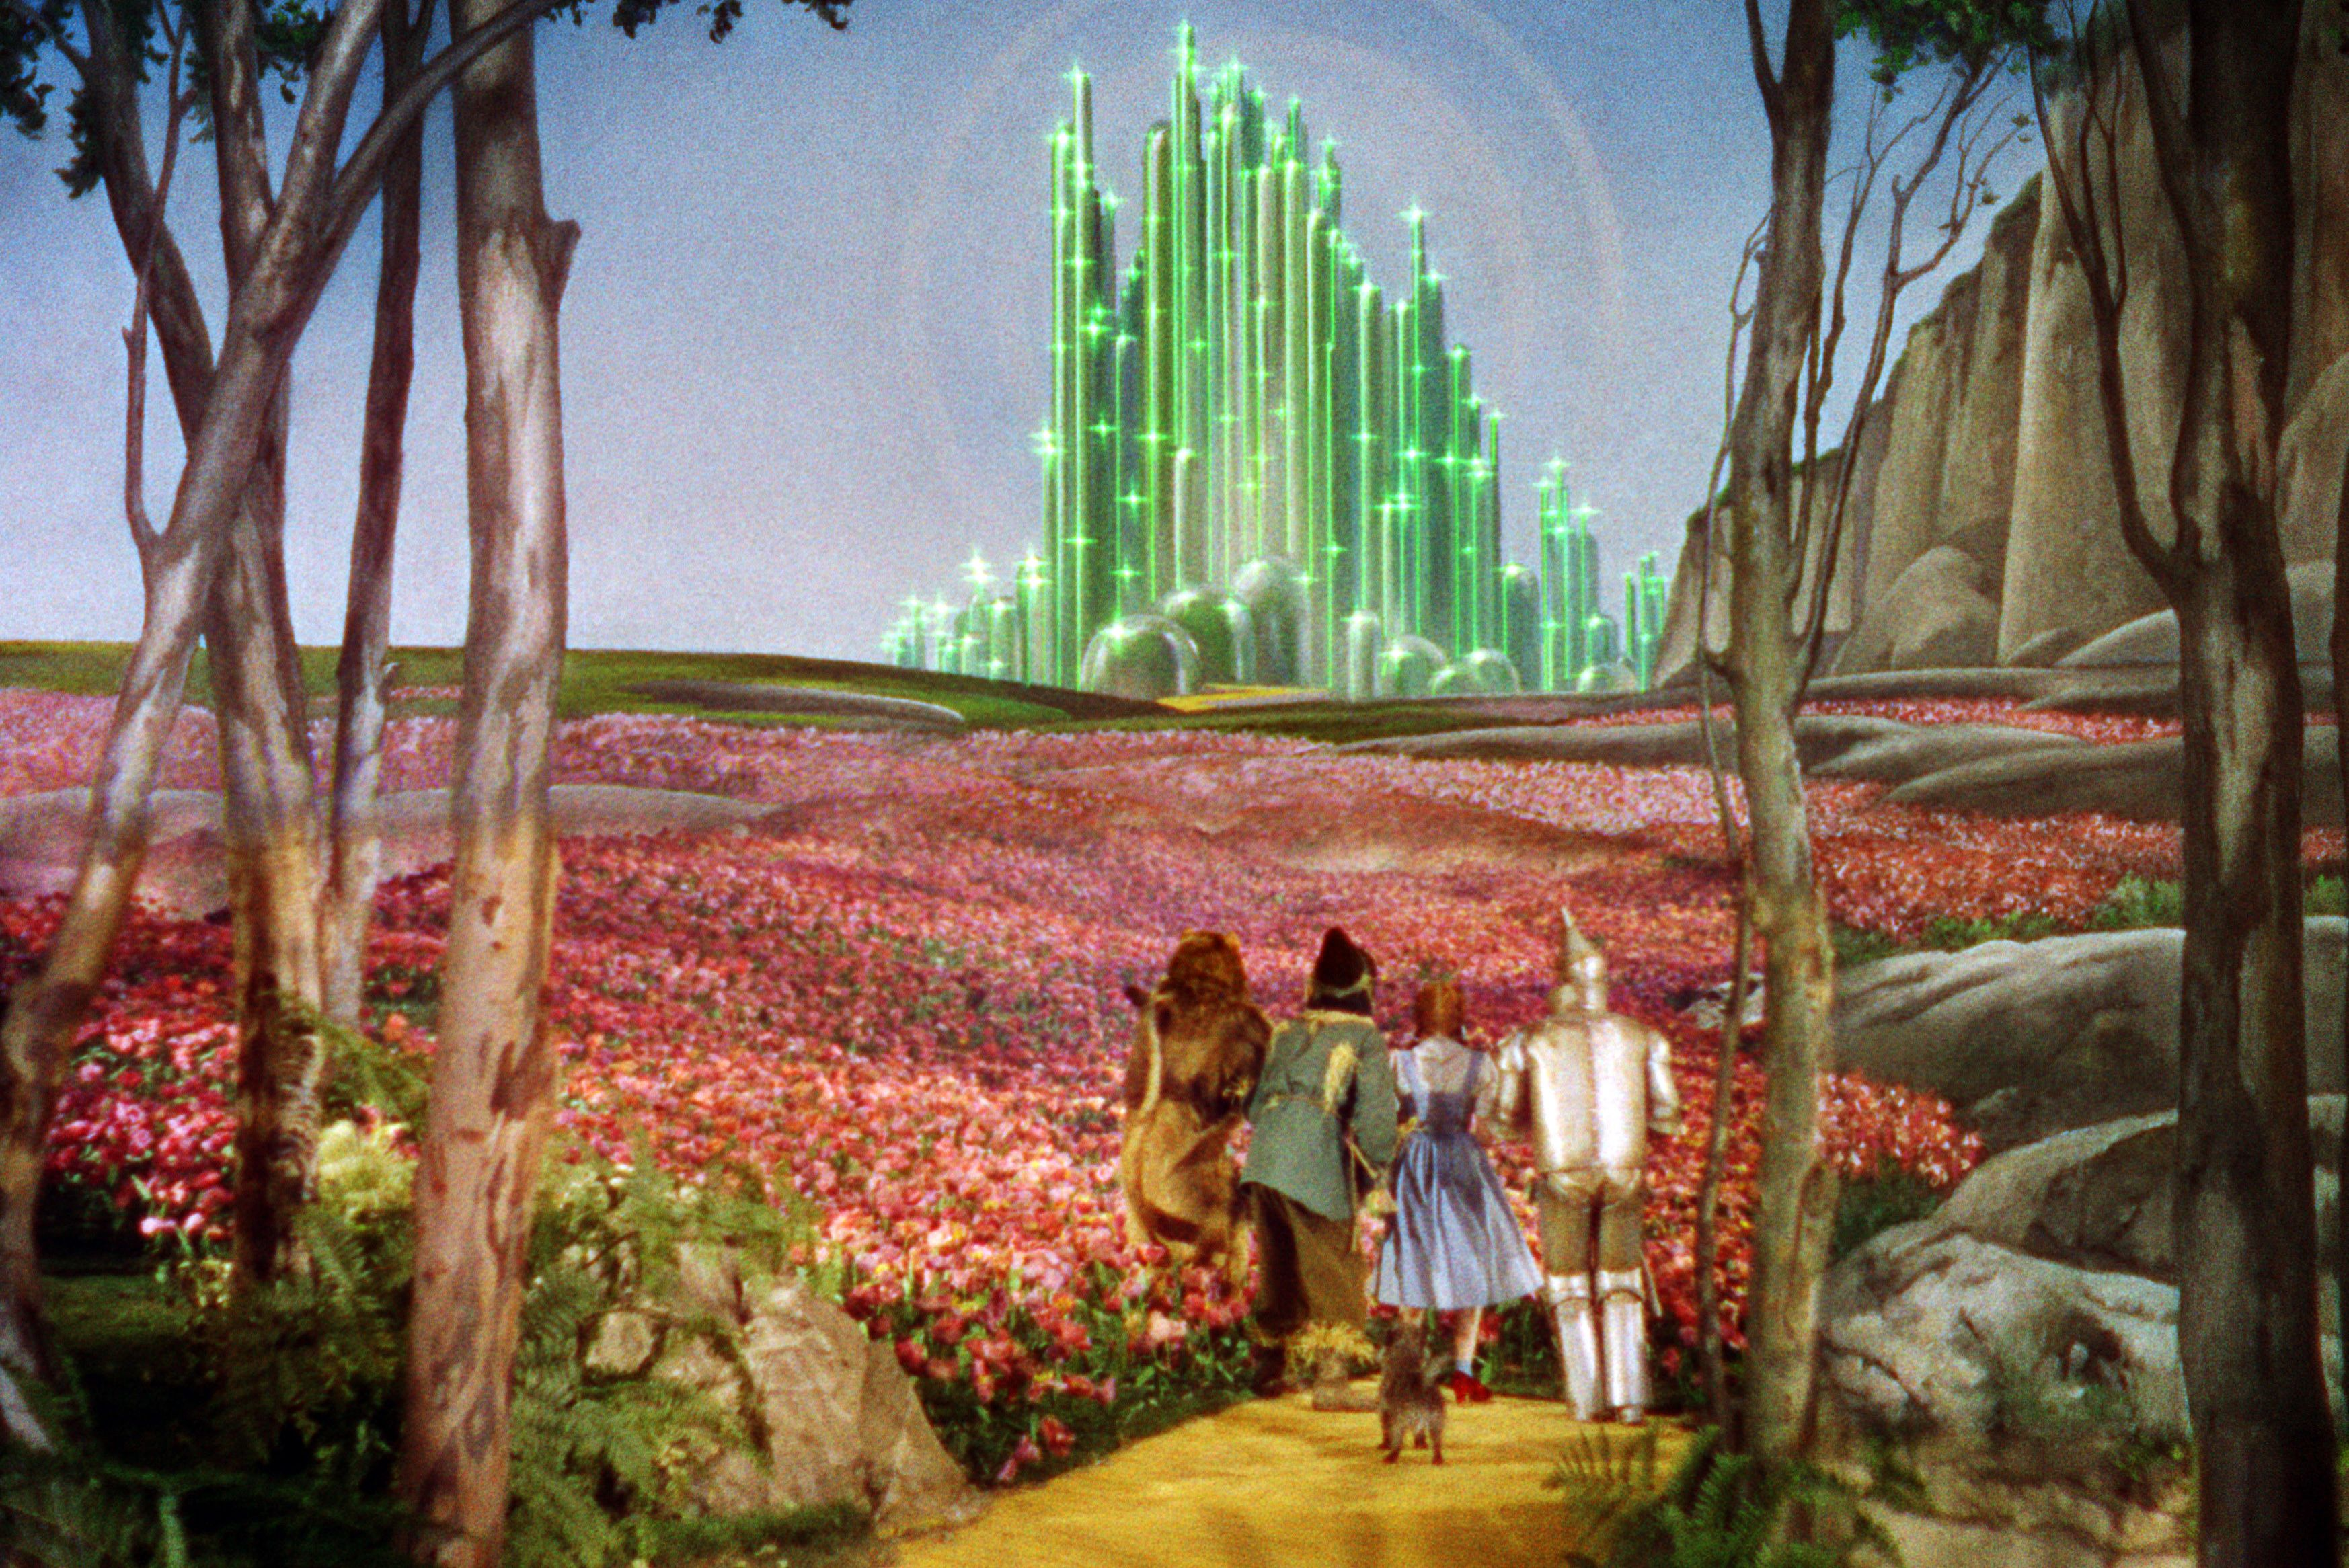 Watch Now There's no place like home, and no classic movie as beloved as Dorothy's adventures in Oz. The film left its imprint on the kinds of narratives and character types—wicked and good witches, scarecrows, tinmen, and cowardly lions, oh my—we see on film.